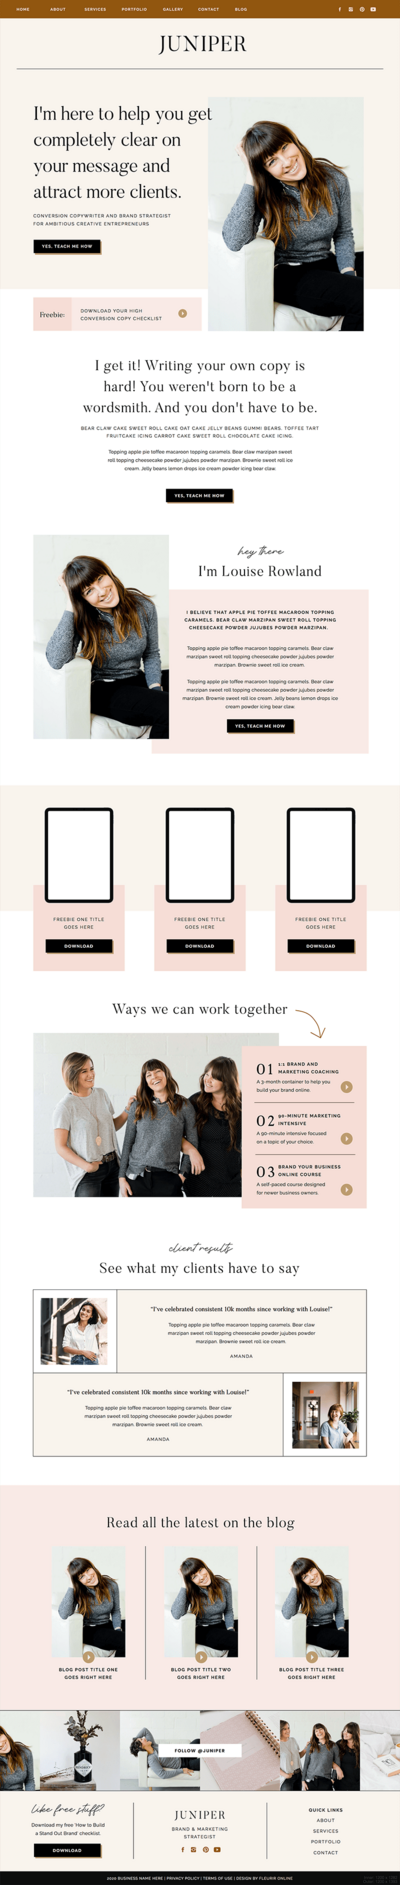 Juniper Showit website template for coaches, creatives and photographers